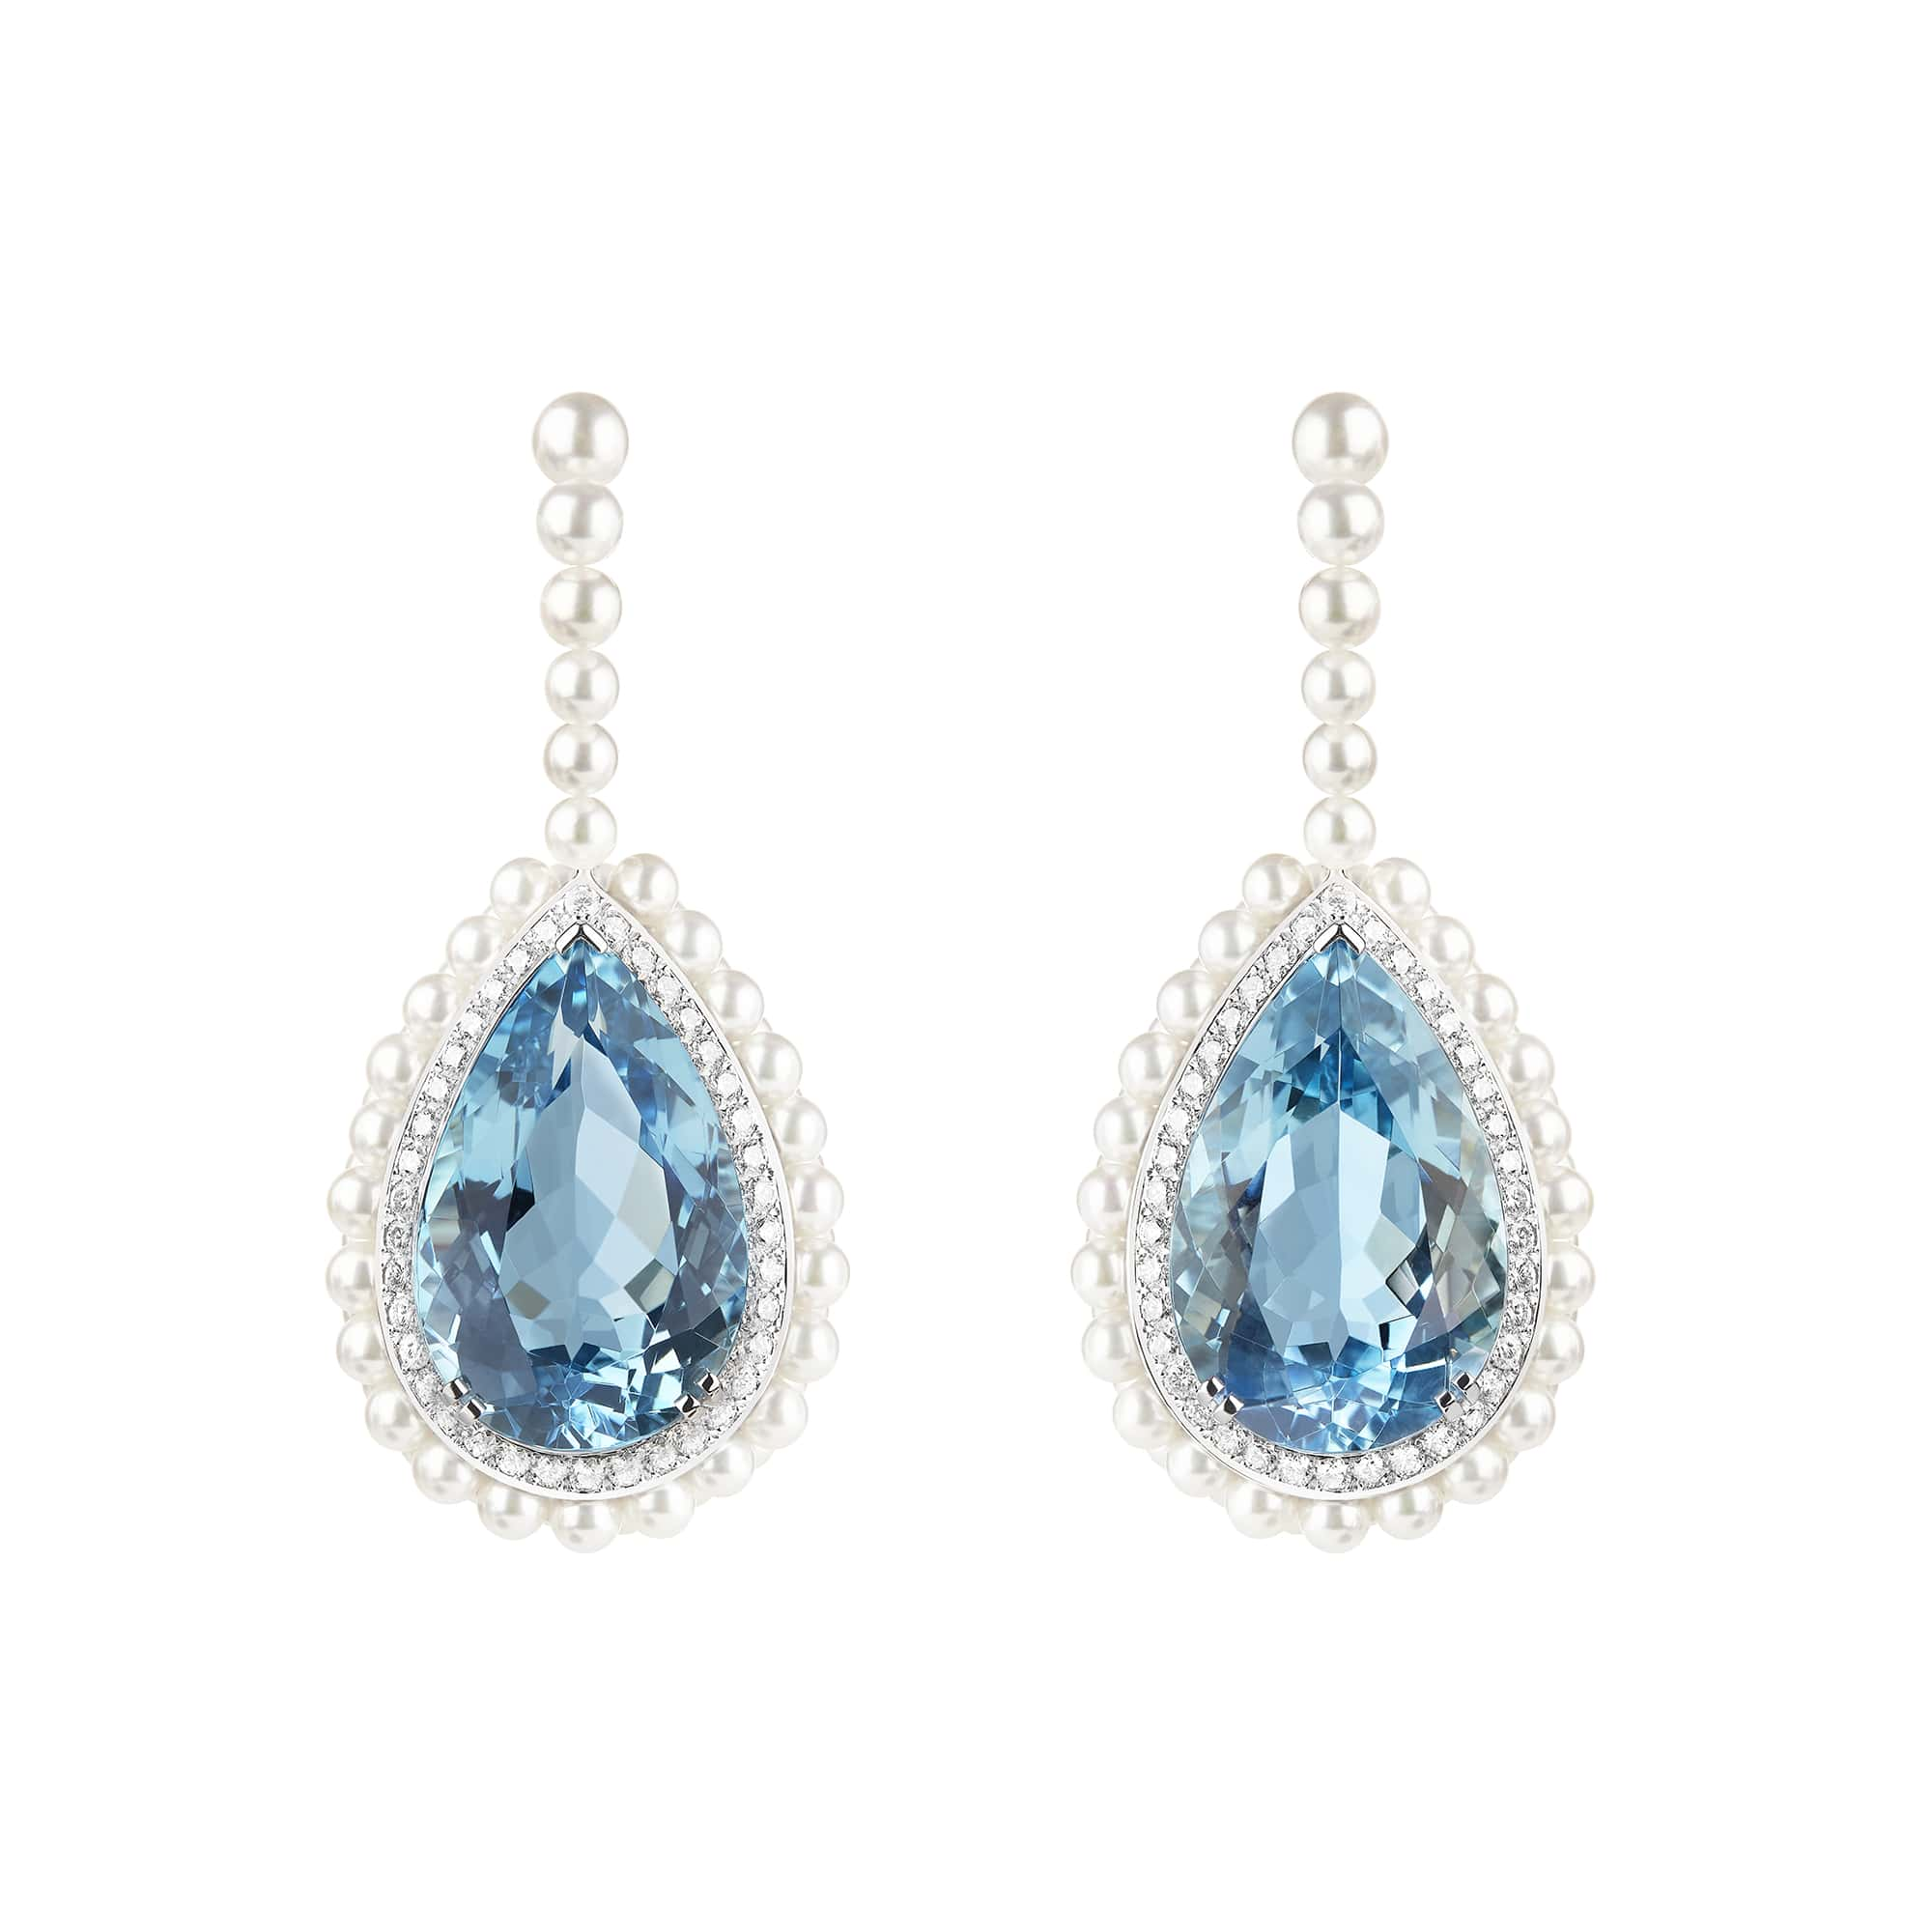 Boucheron-Baïkal-earrings